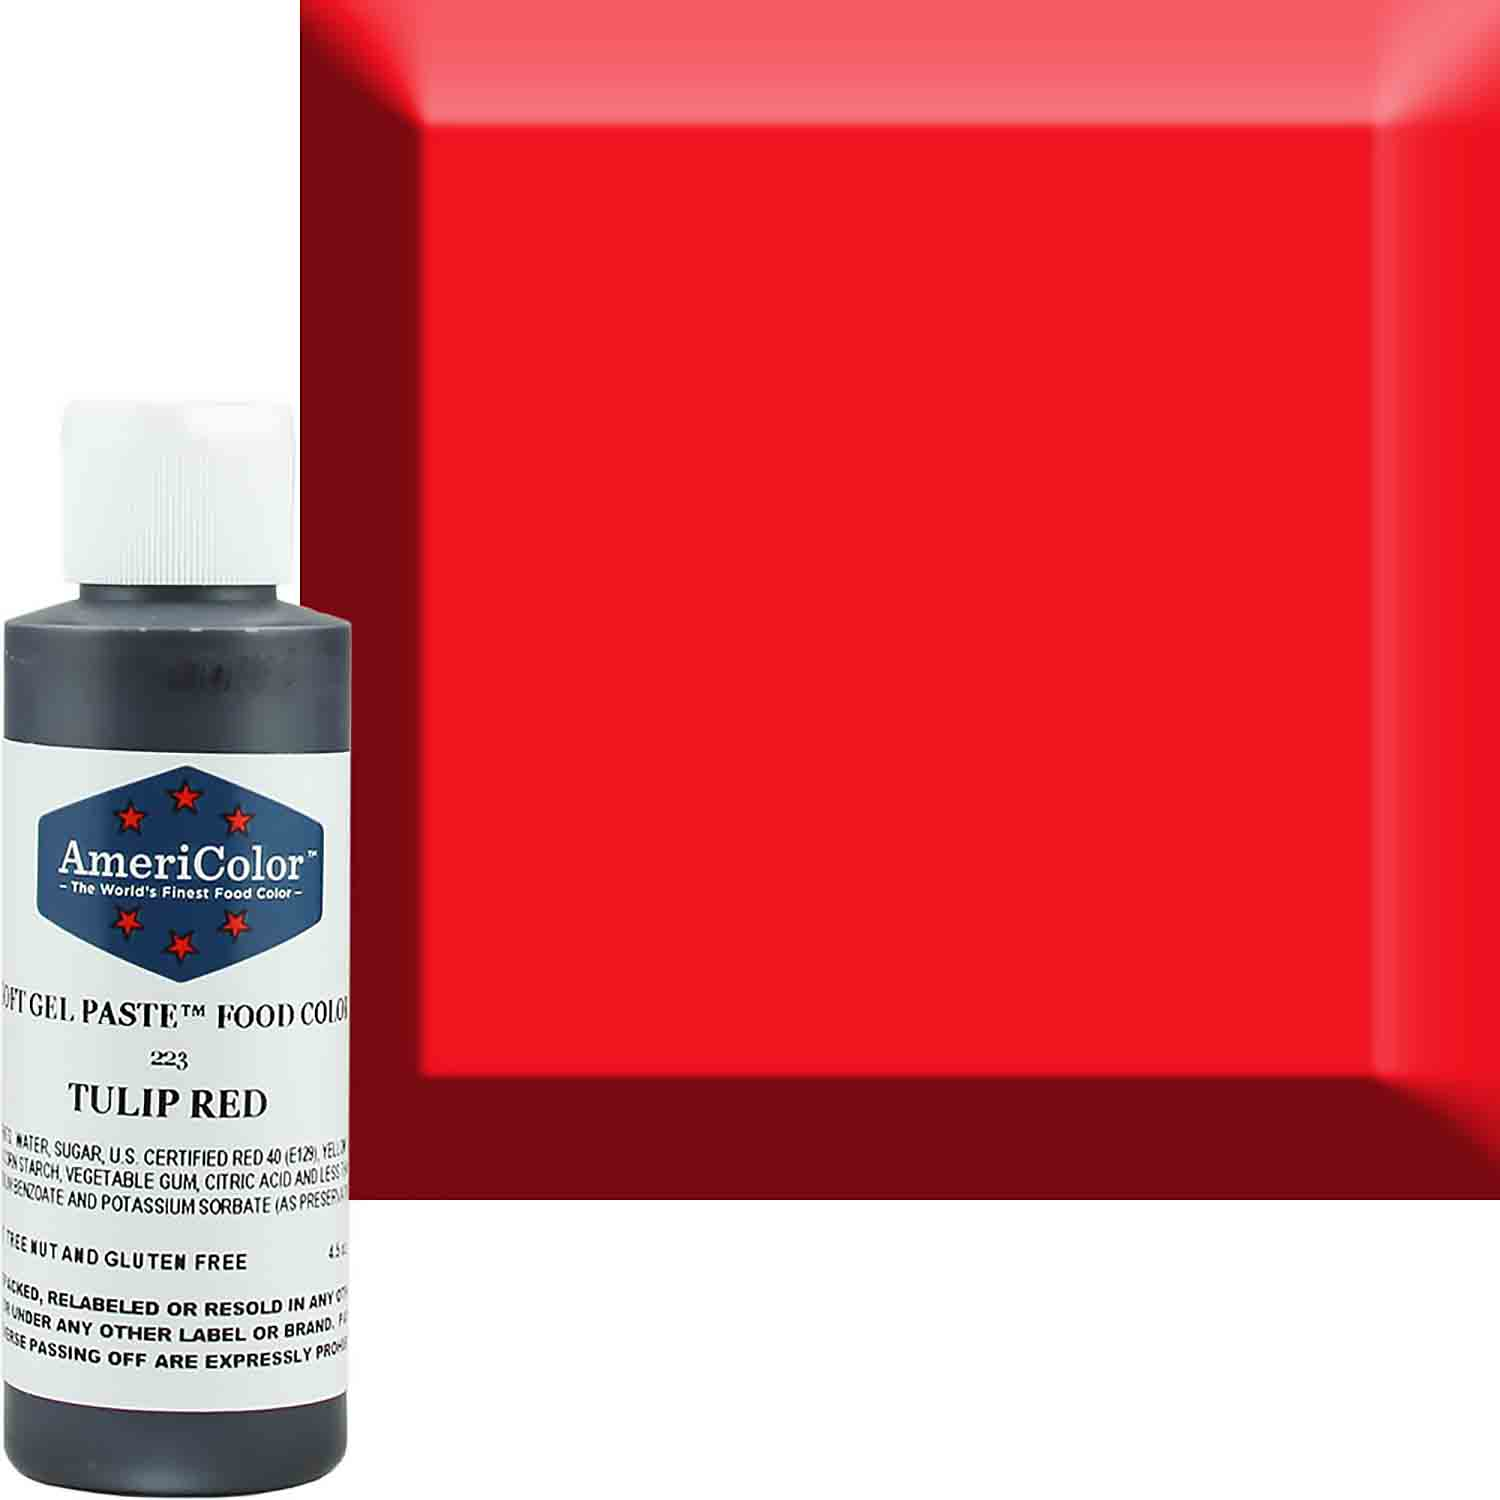 Tulip Red Soft Gel Paste™ Food Color